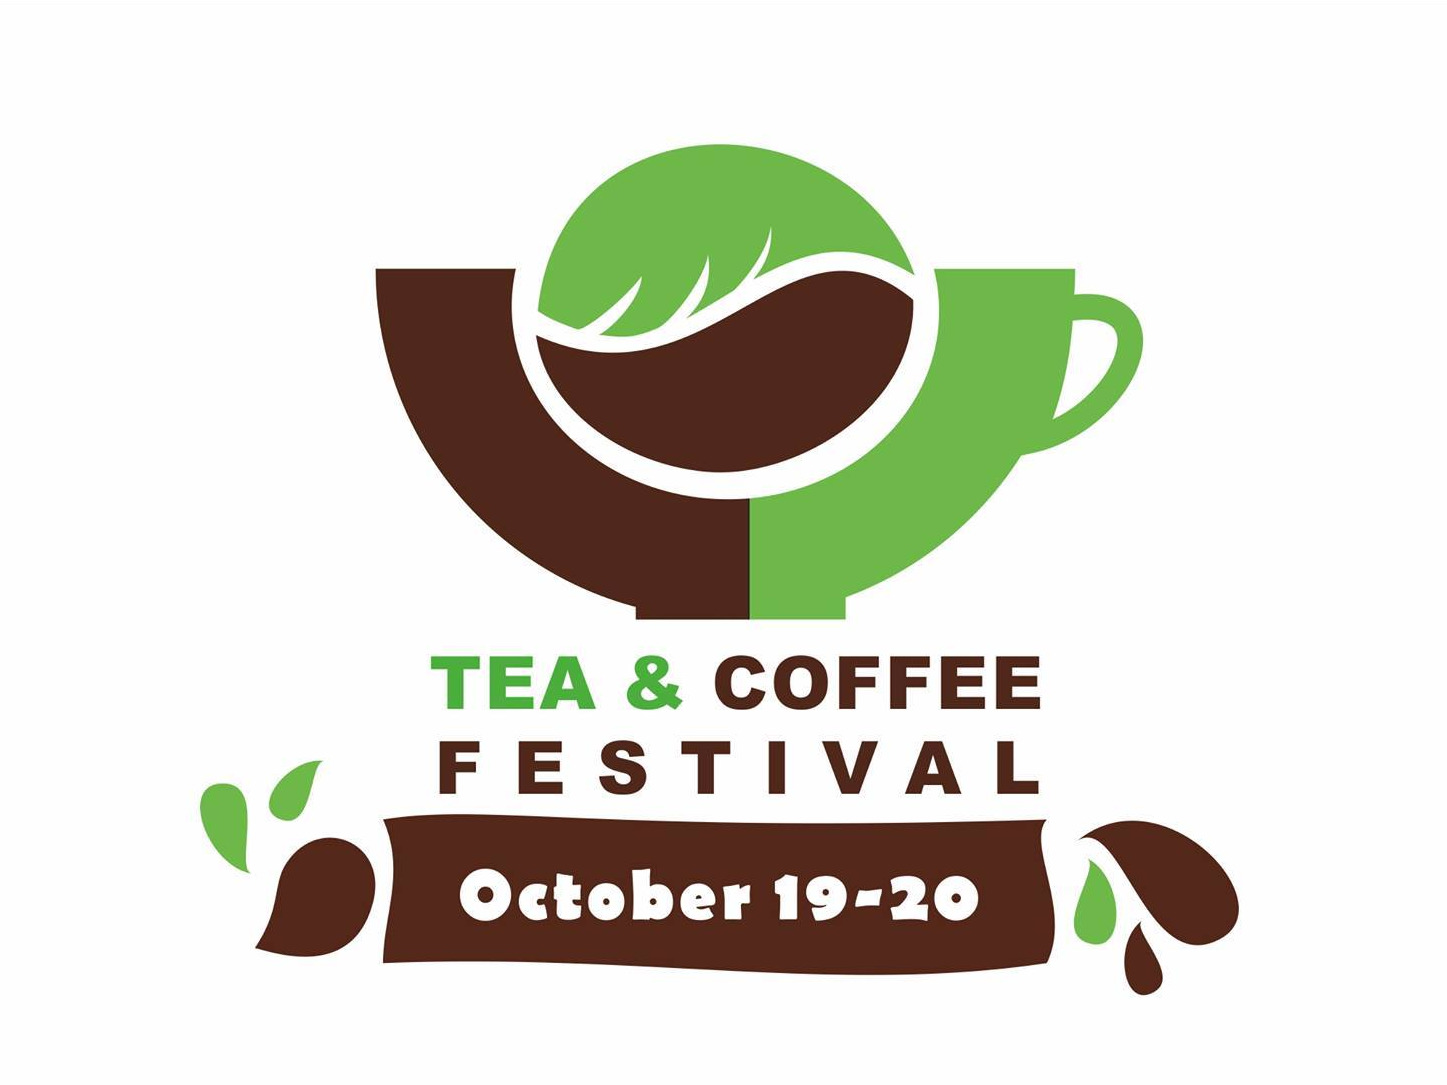 Tea & Coffee Festival